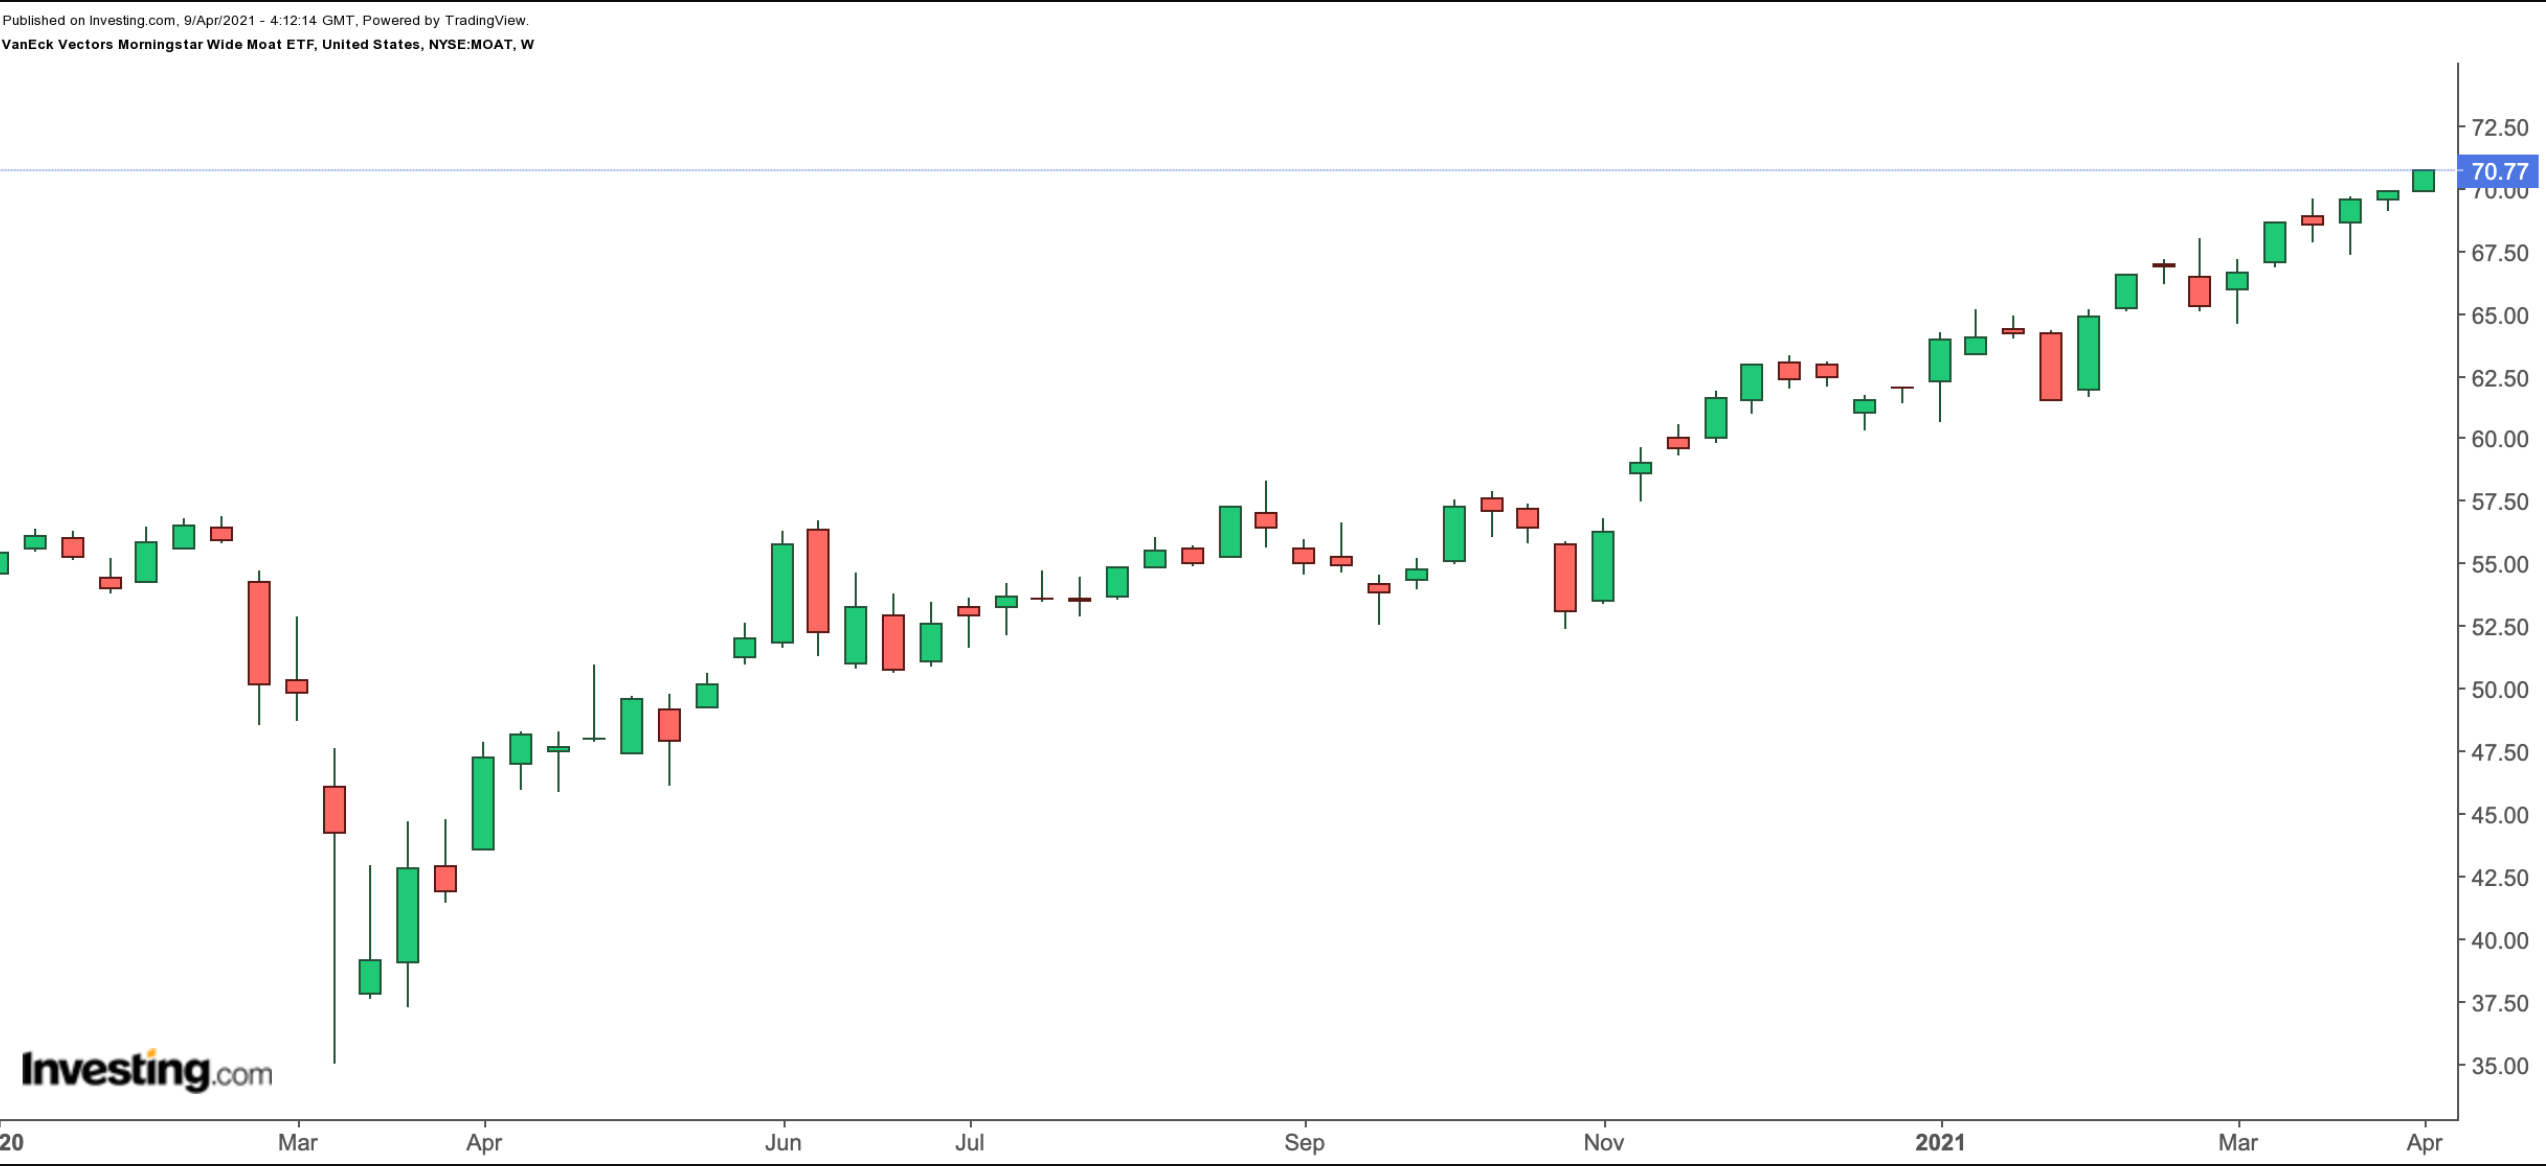 MOAT Weekly